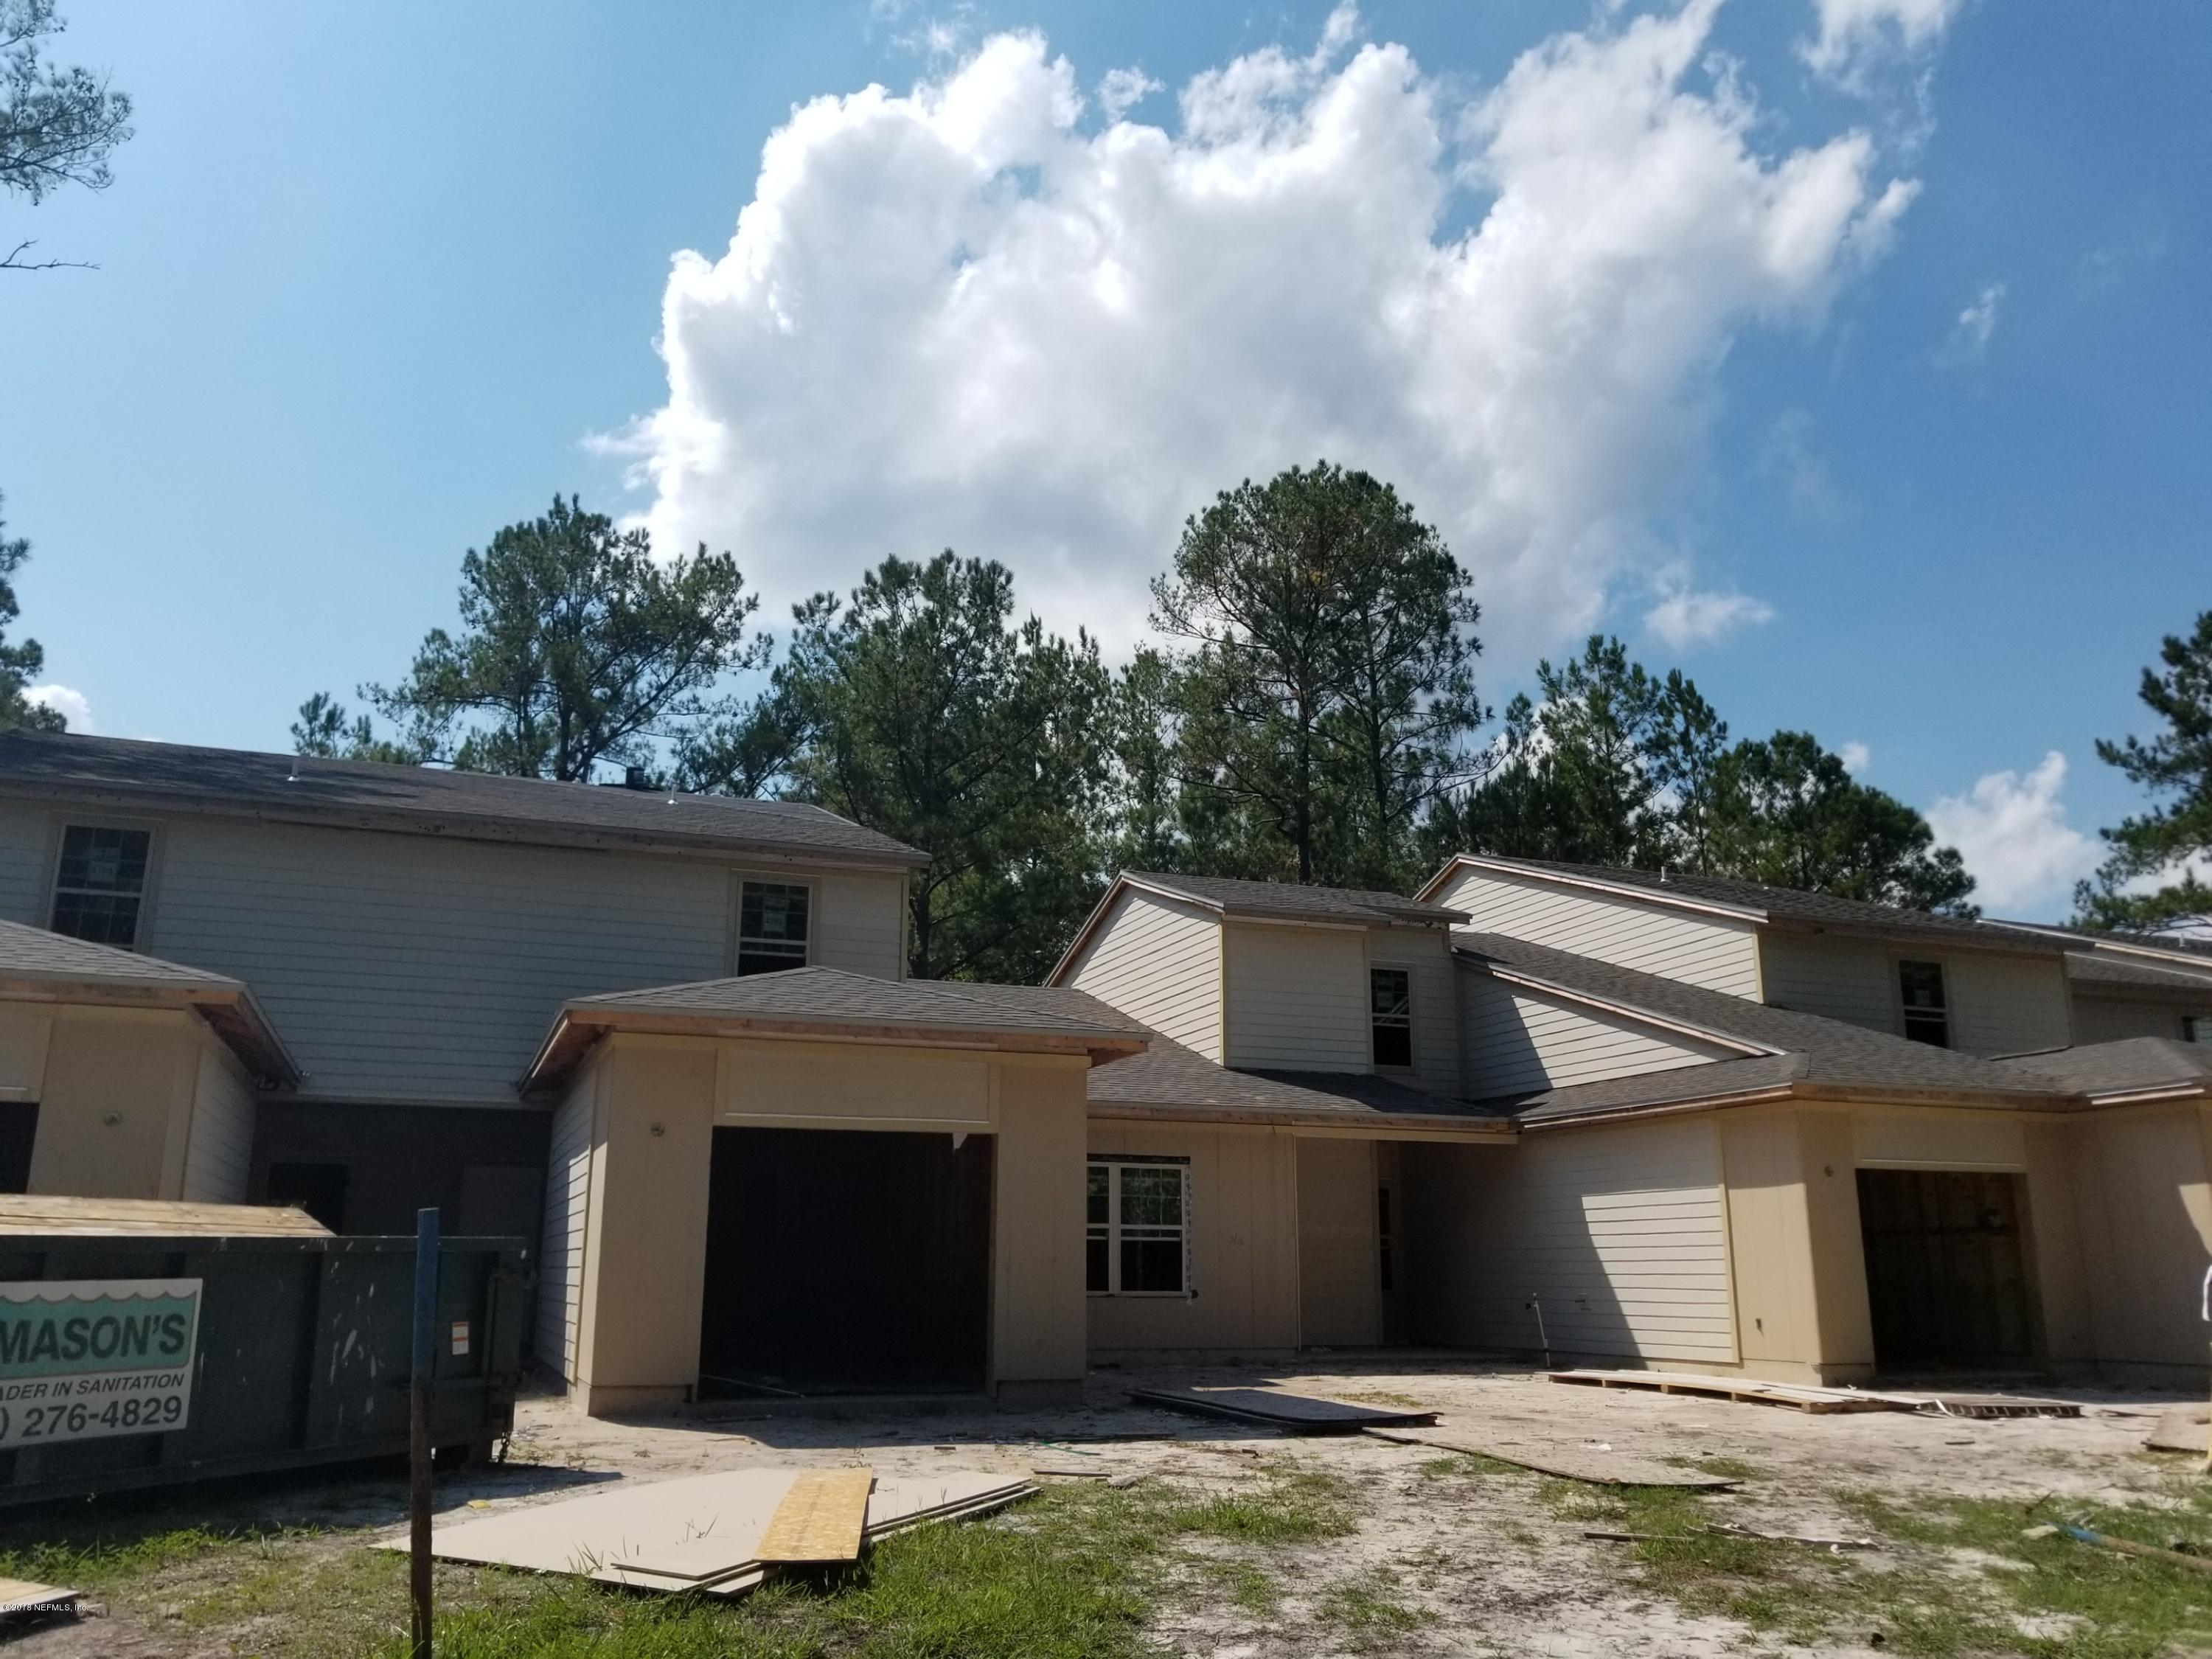 4190 QUIET CREEK, MIDDLEBURG, FLORIDA 32068, 3 Bedrooms Bedrooms, ,2 BathroomsBathrooms,Residential - condos/townhomes,For sale,QUIET CREEK,845494